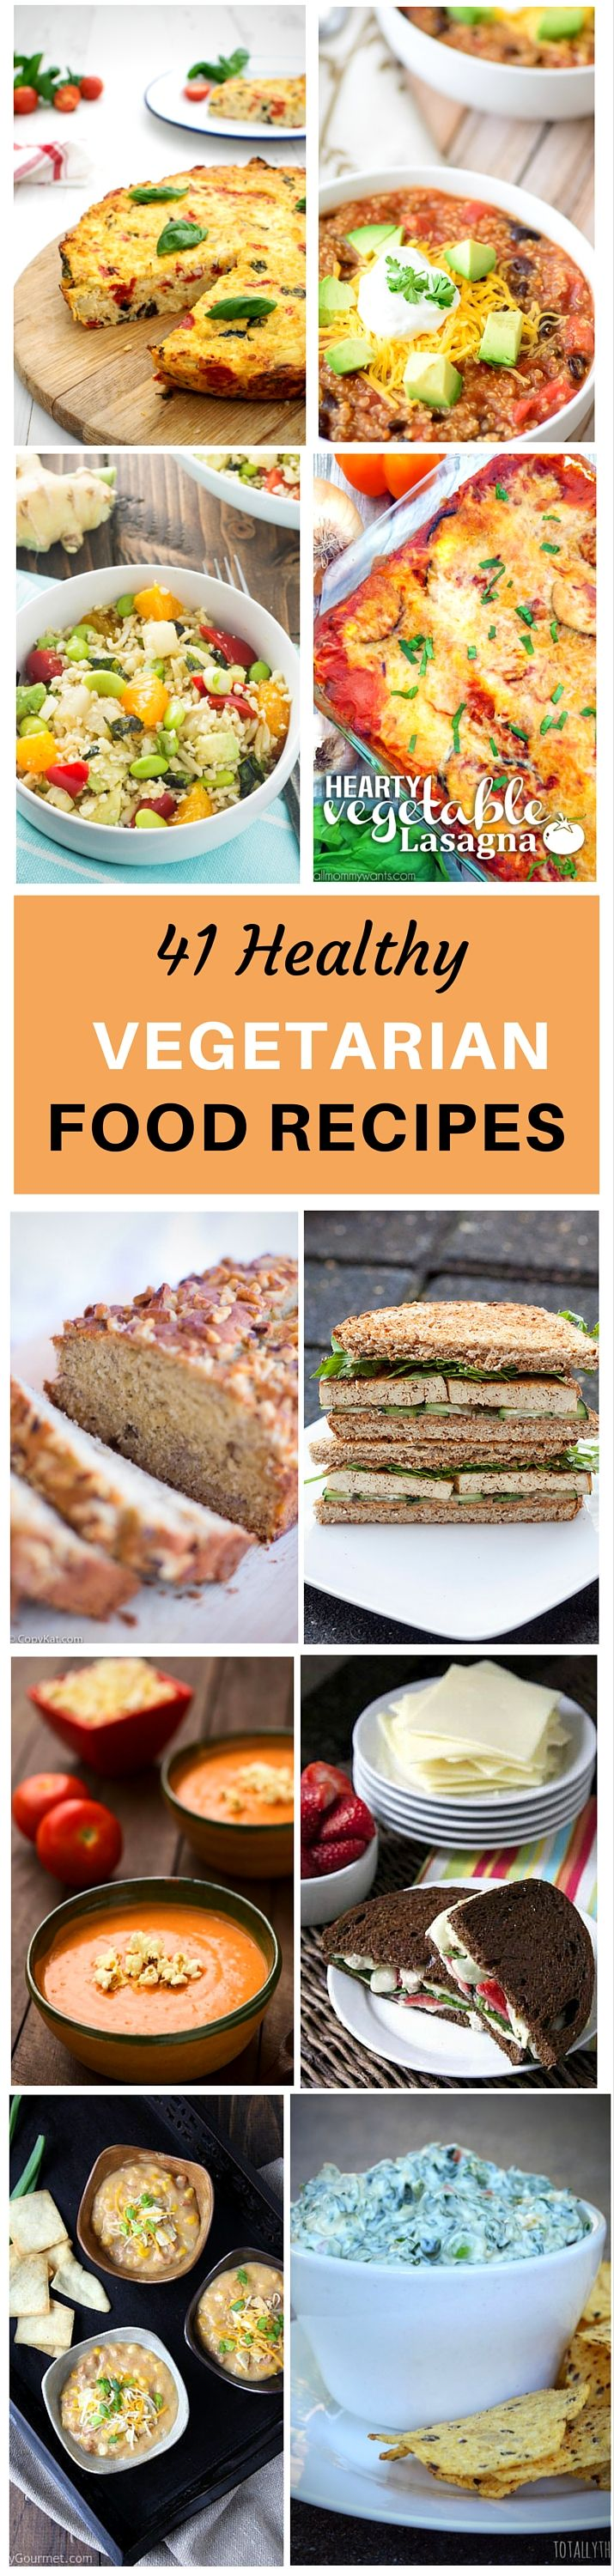 Cutting meat out of your diet and increasing the amount of fruits, vegetables, and other whole foods that you eat on a daily basis has many health benefits. Not only are you increasing the amount of vitamins and minerals that your body receives, you are flushing harmful toxins out of your system. Plan on making one or more of these 41 Healthy Vegetarian Recipes and boost your metabolism and energy level!